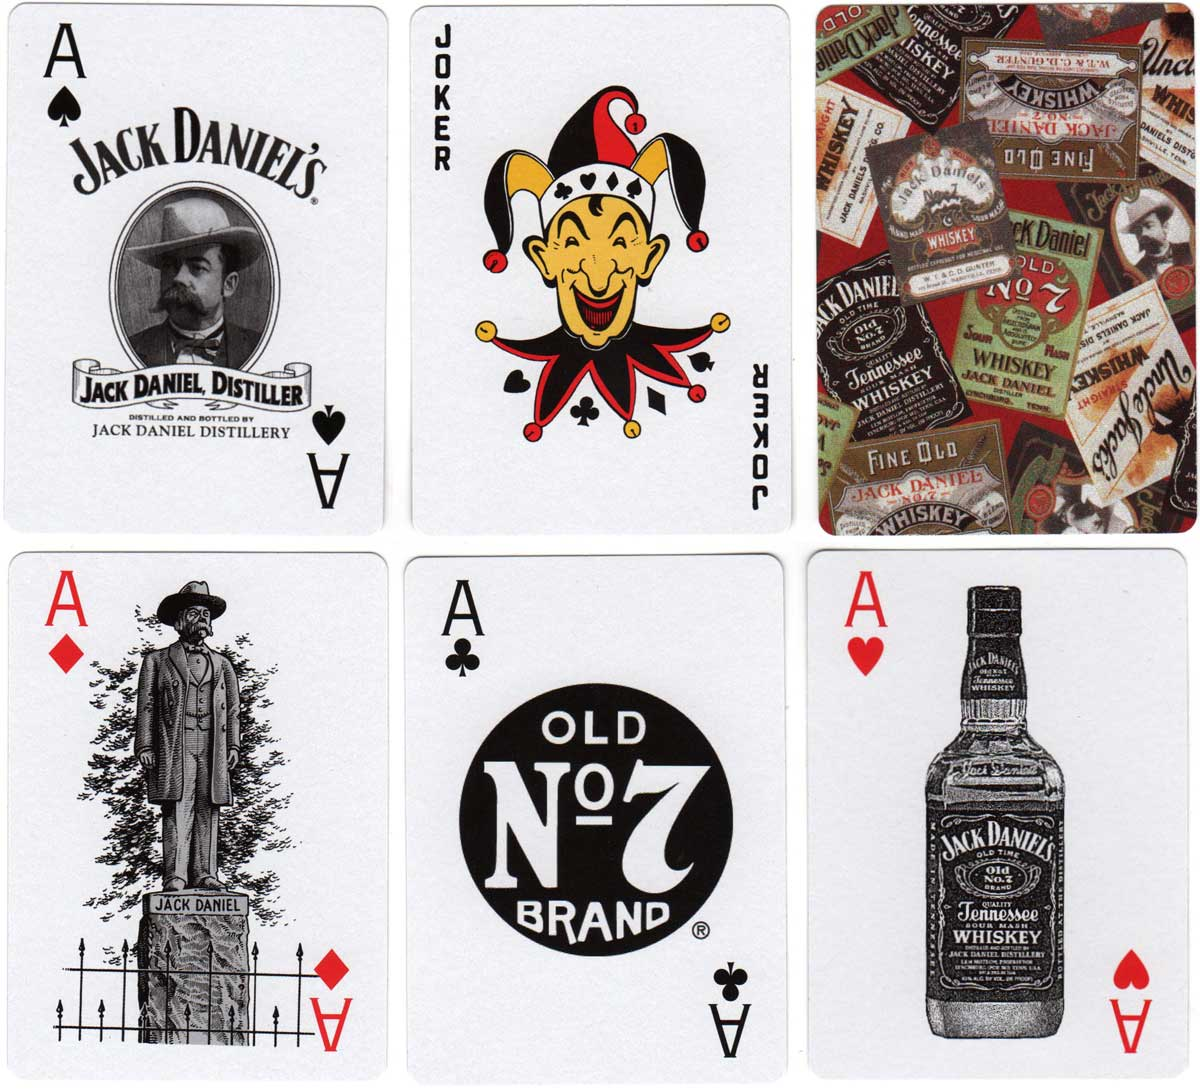 special deck for Jack Daniel's published by Hoyle Products, 2003